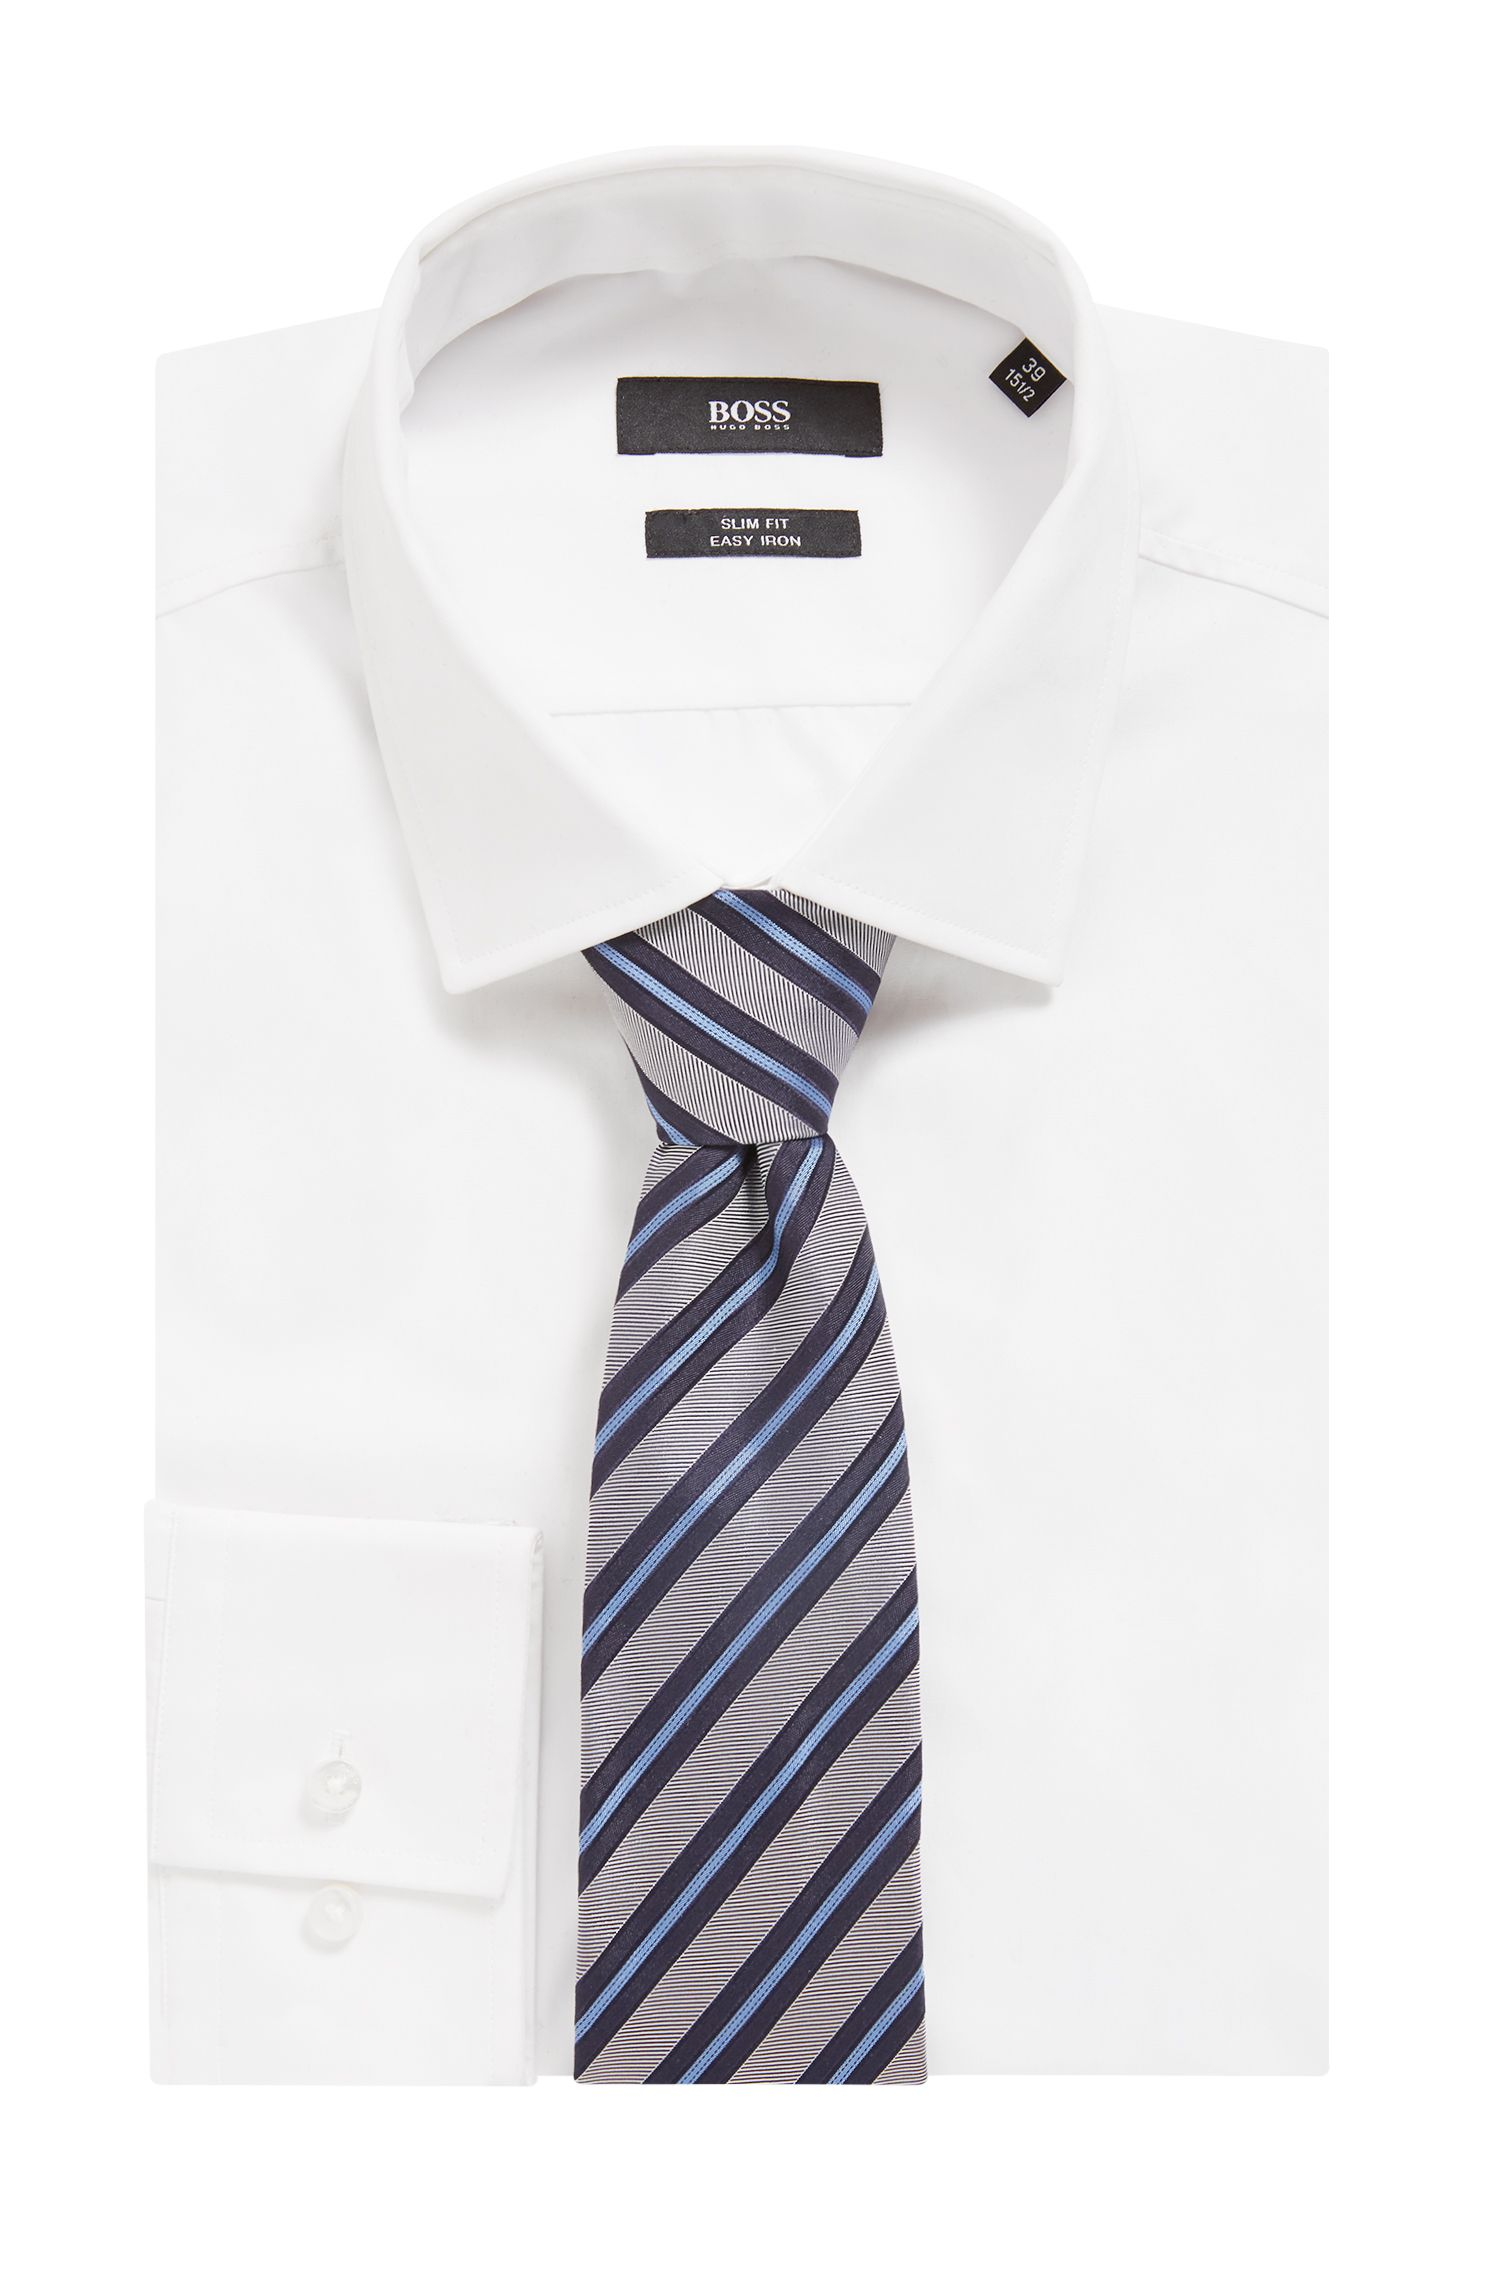 Italian-made tie in diagonal-striped silk jacquard